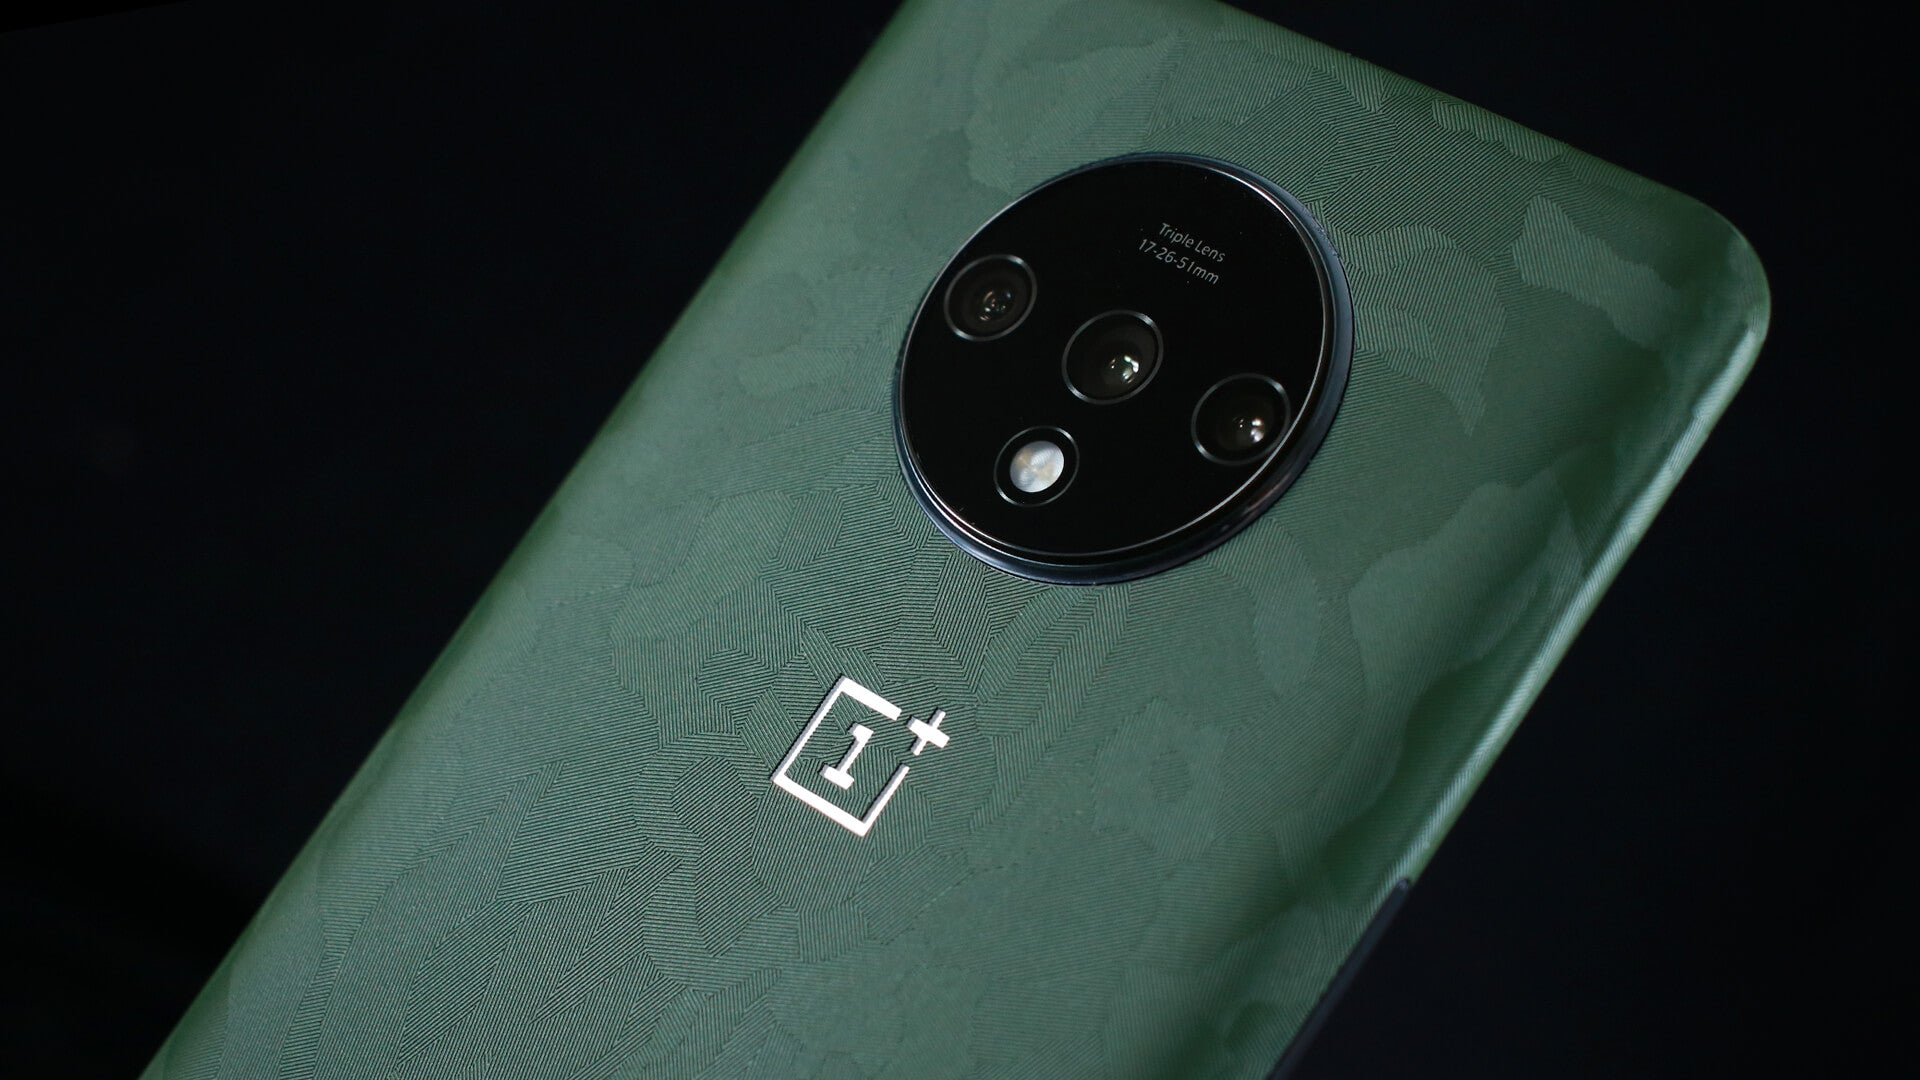 OnePlus 7T Green Camo Skins